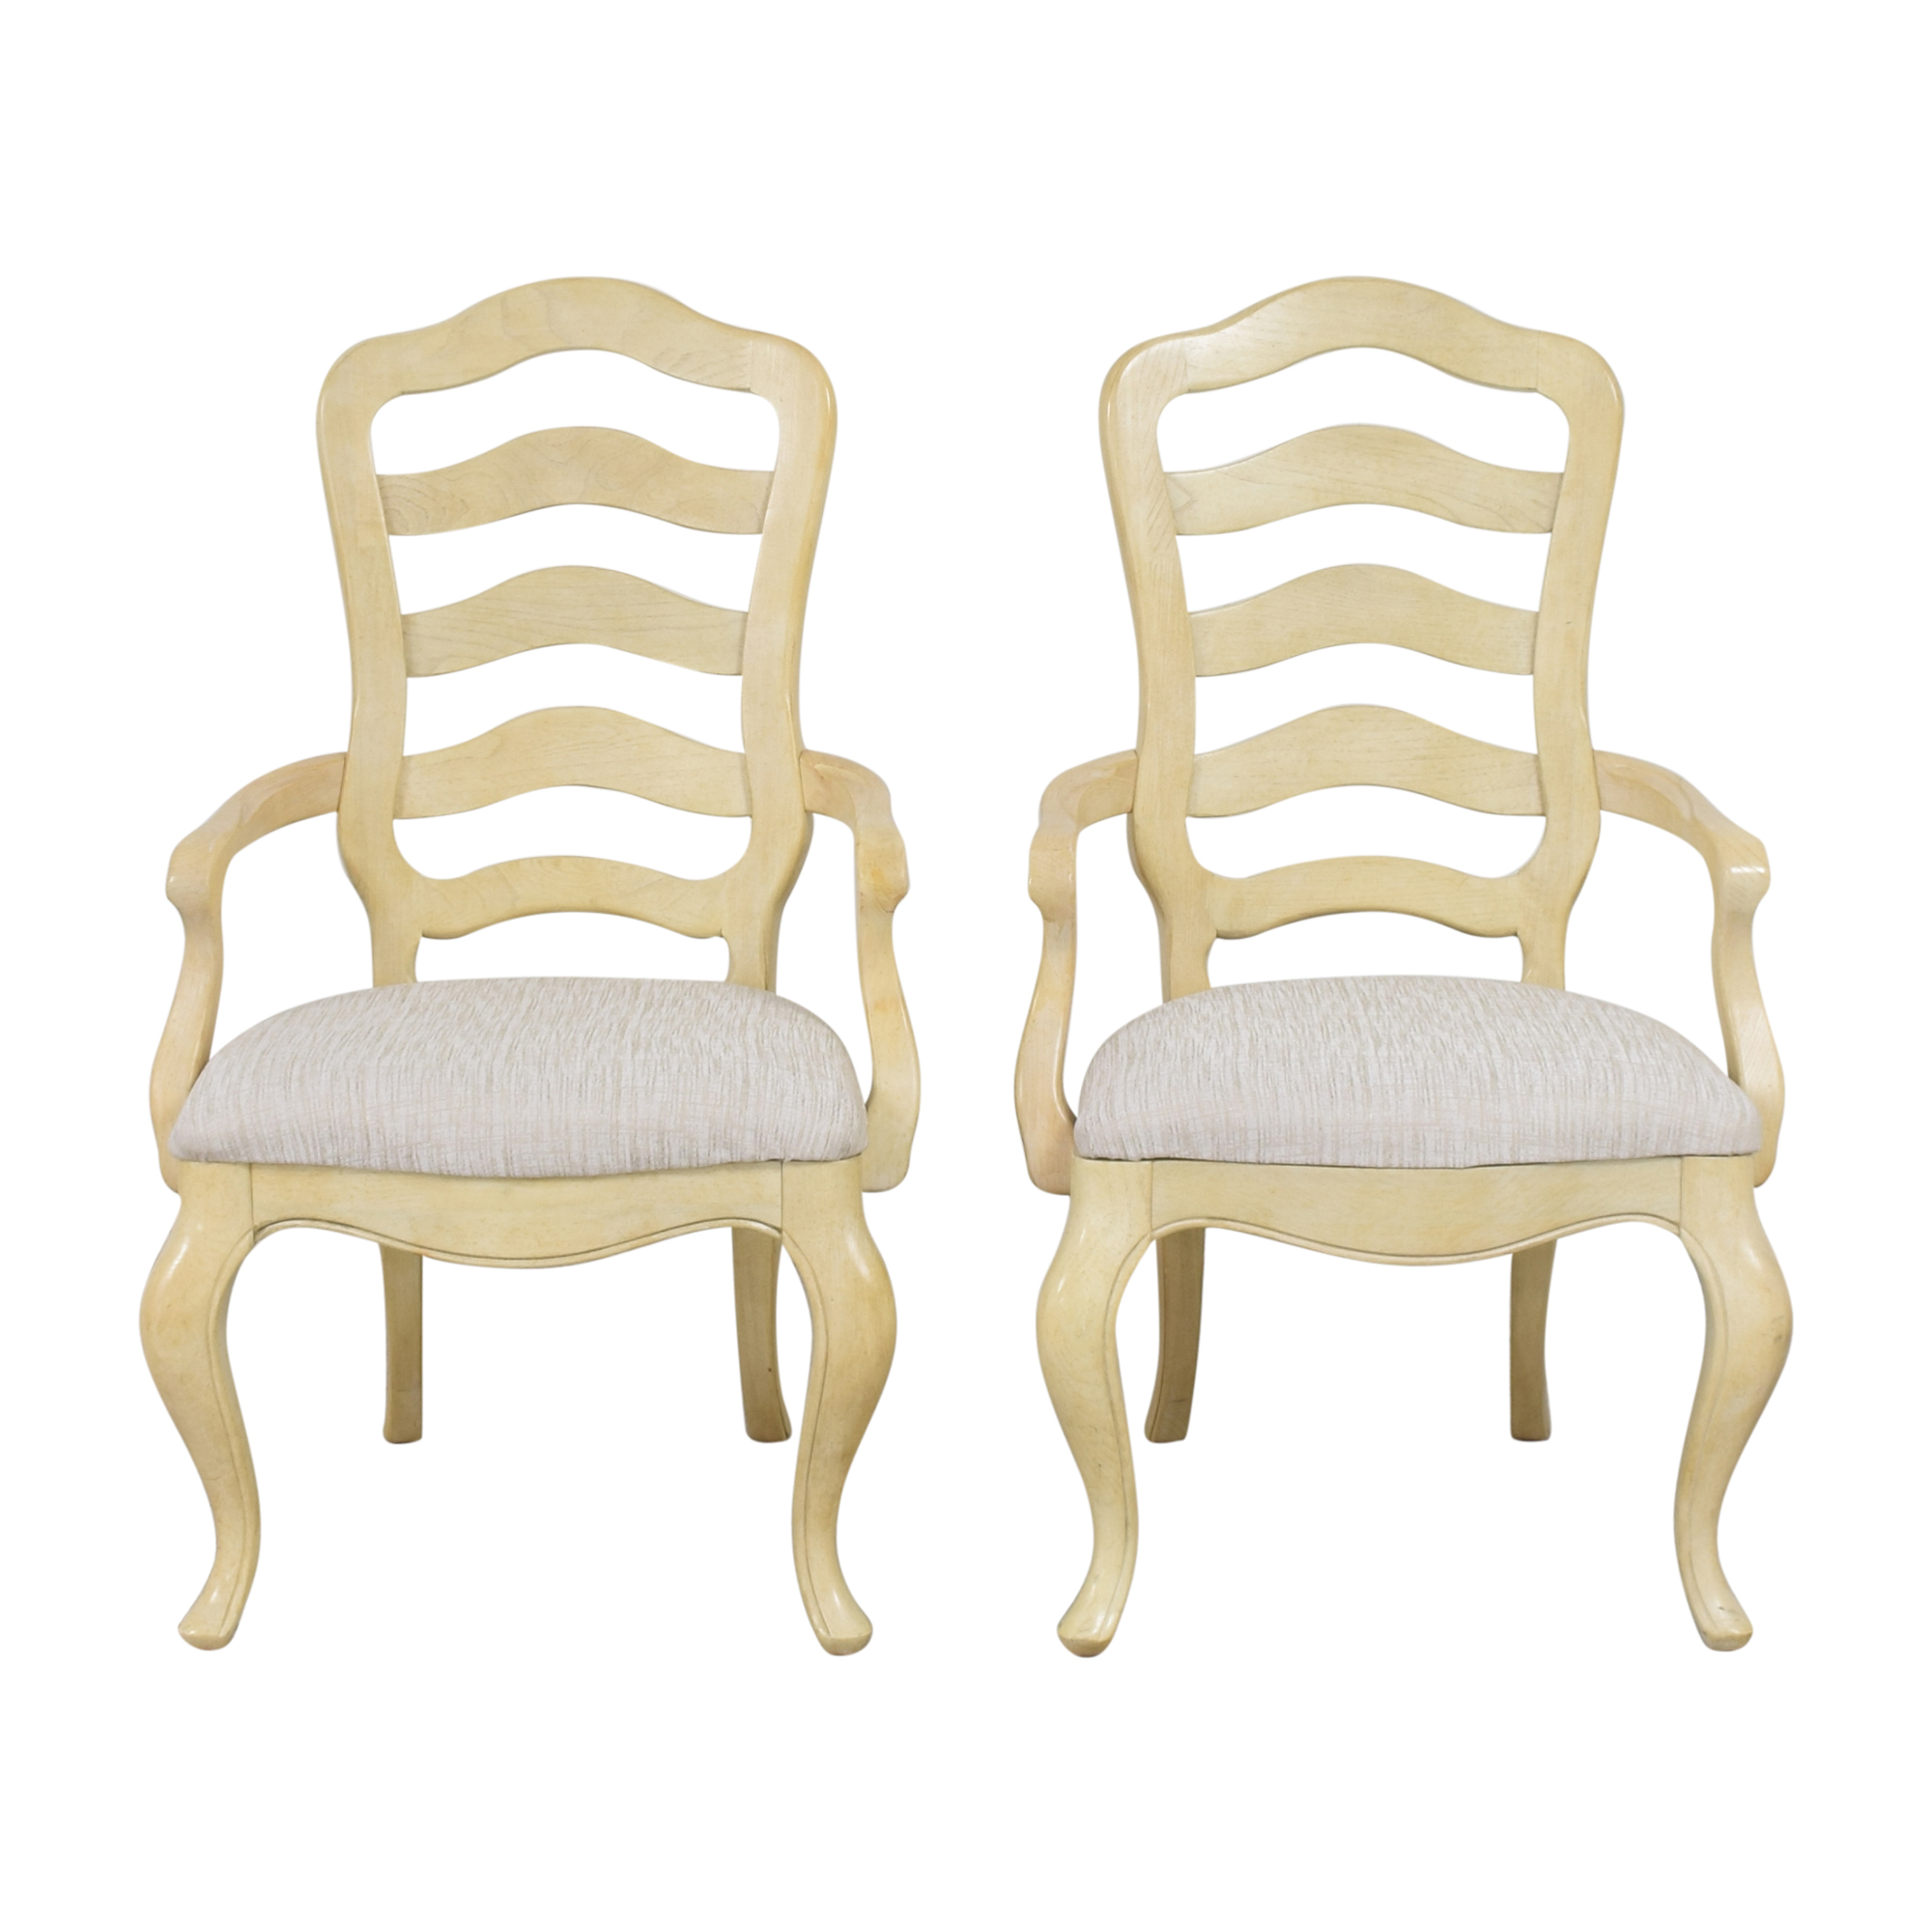 Bernhardt Dining Arm Chairs / Chairs